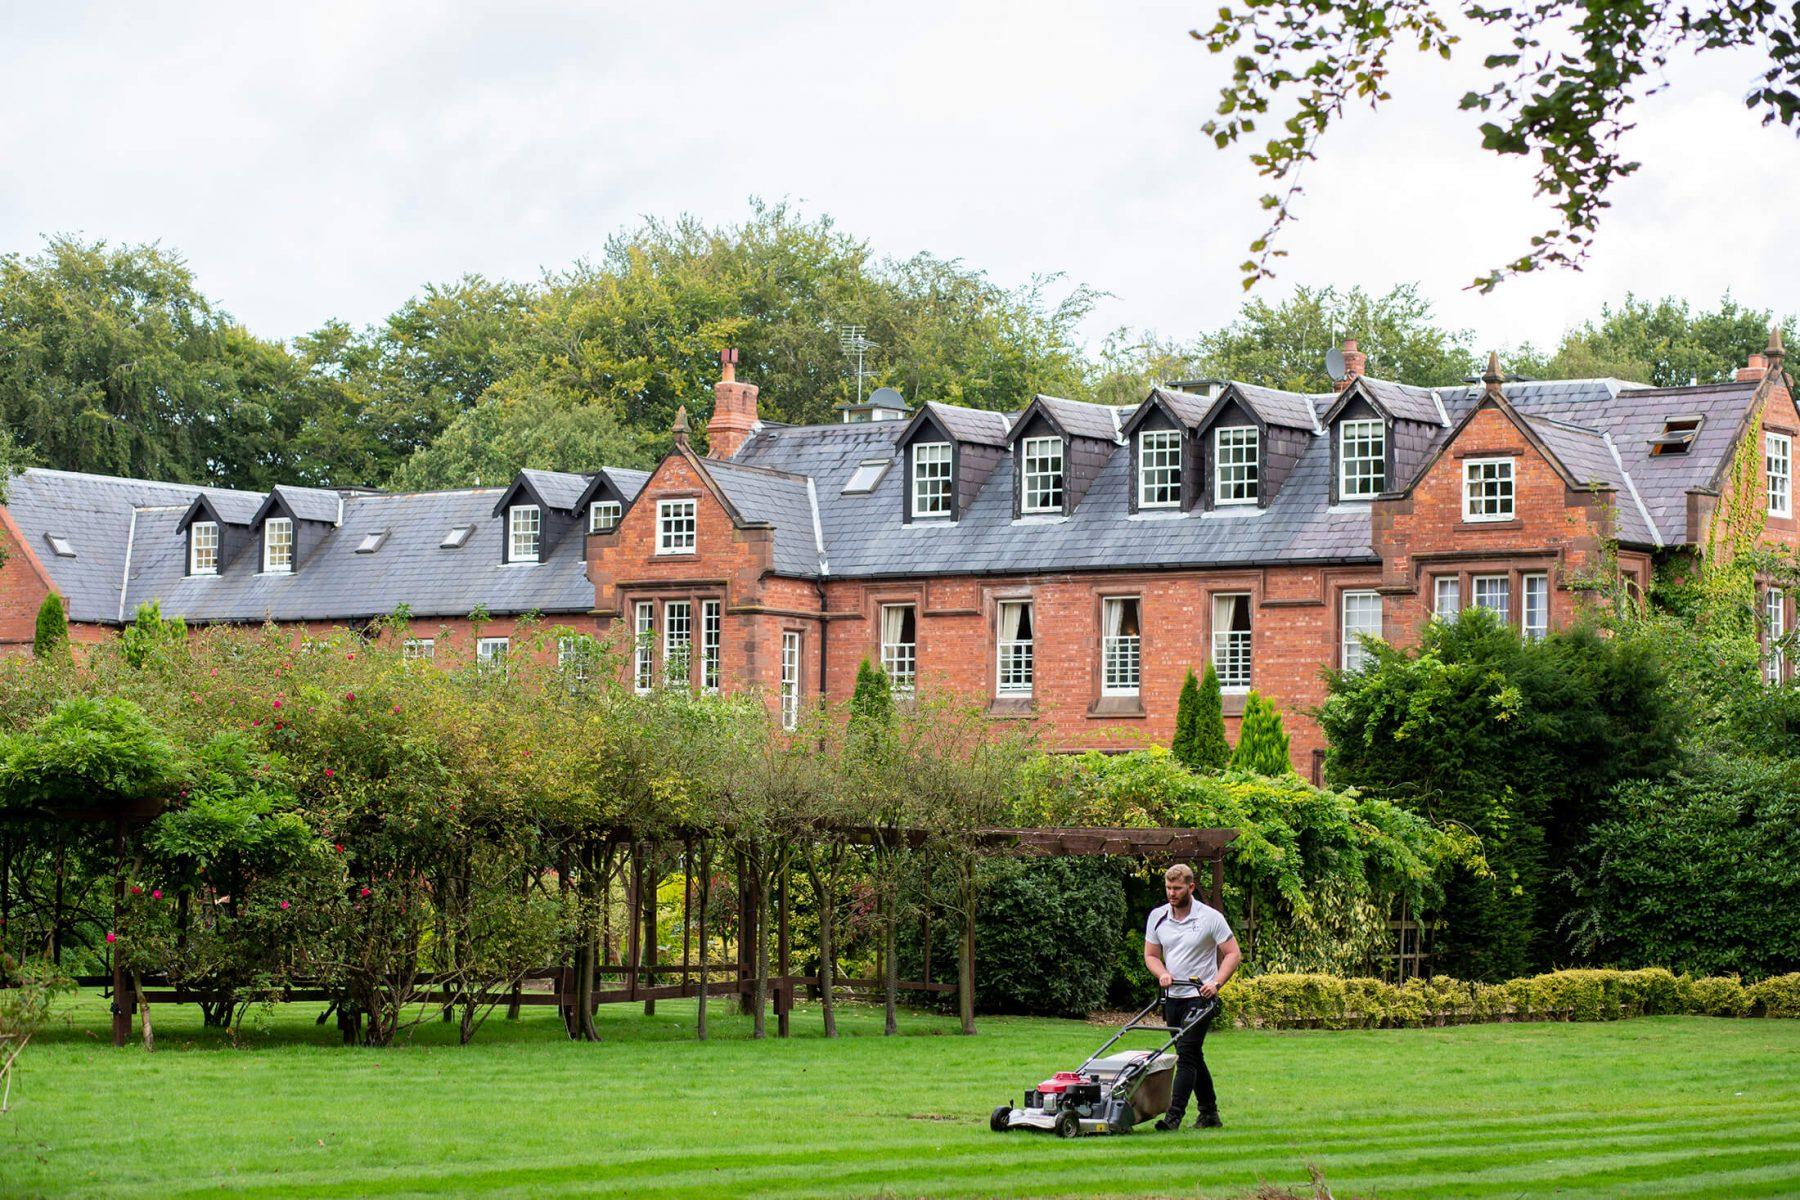 A member of staff mows the lawn outside Nunsmere Hall